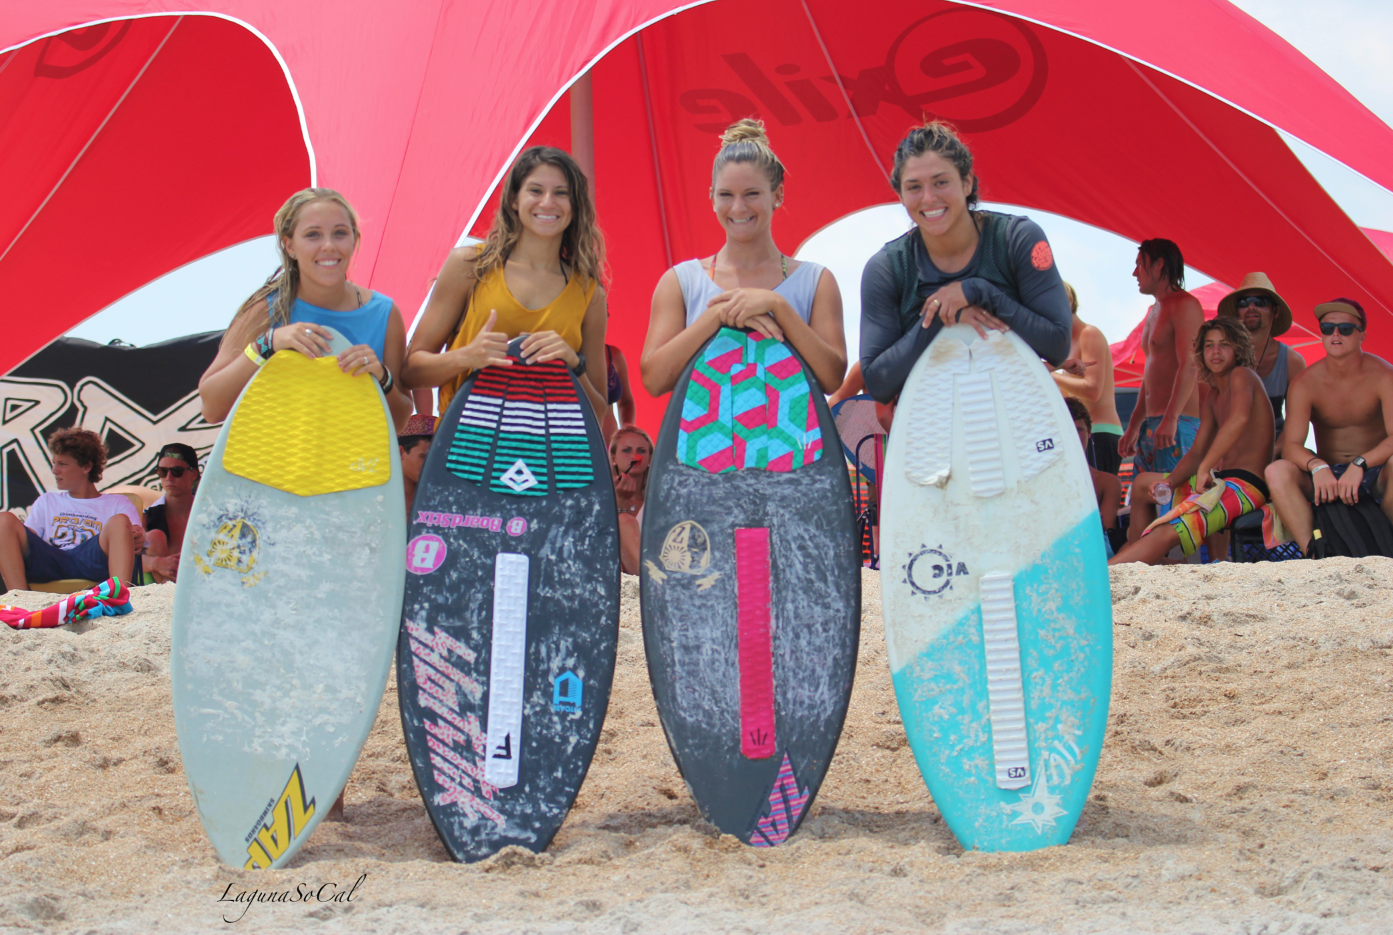 10 final pro competitors at Stop 2 Photo by Fabiana Badie